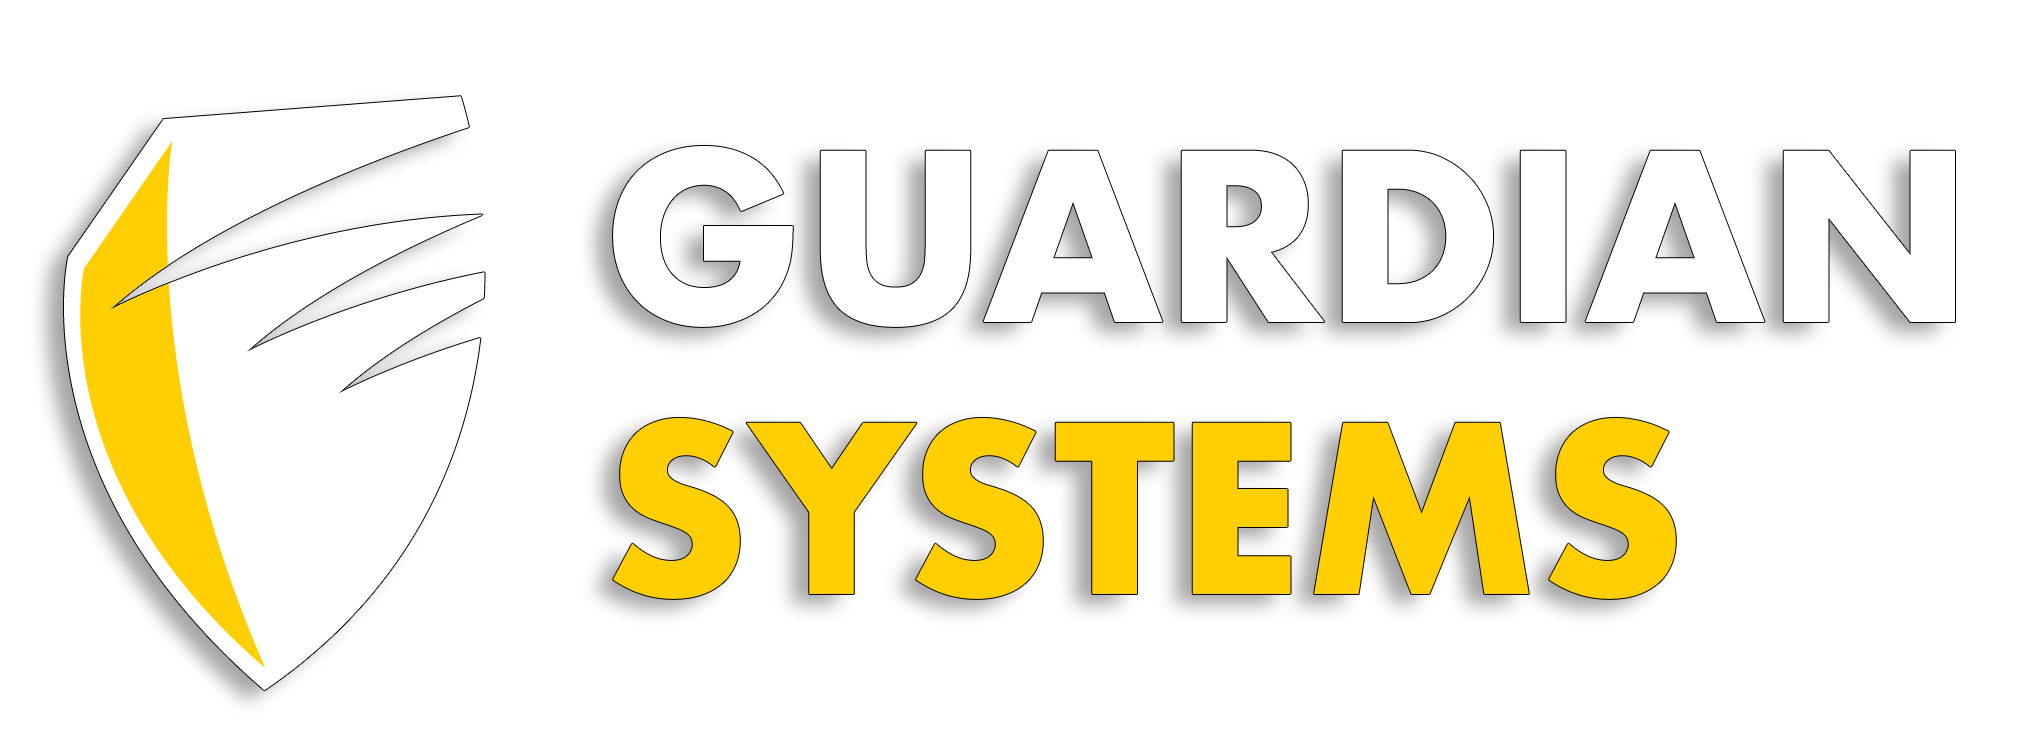 Guardian Logos Stacked Banner.png